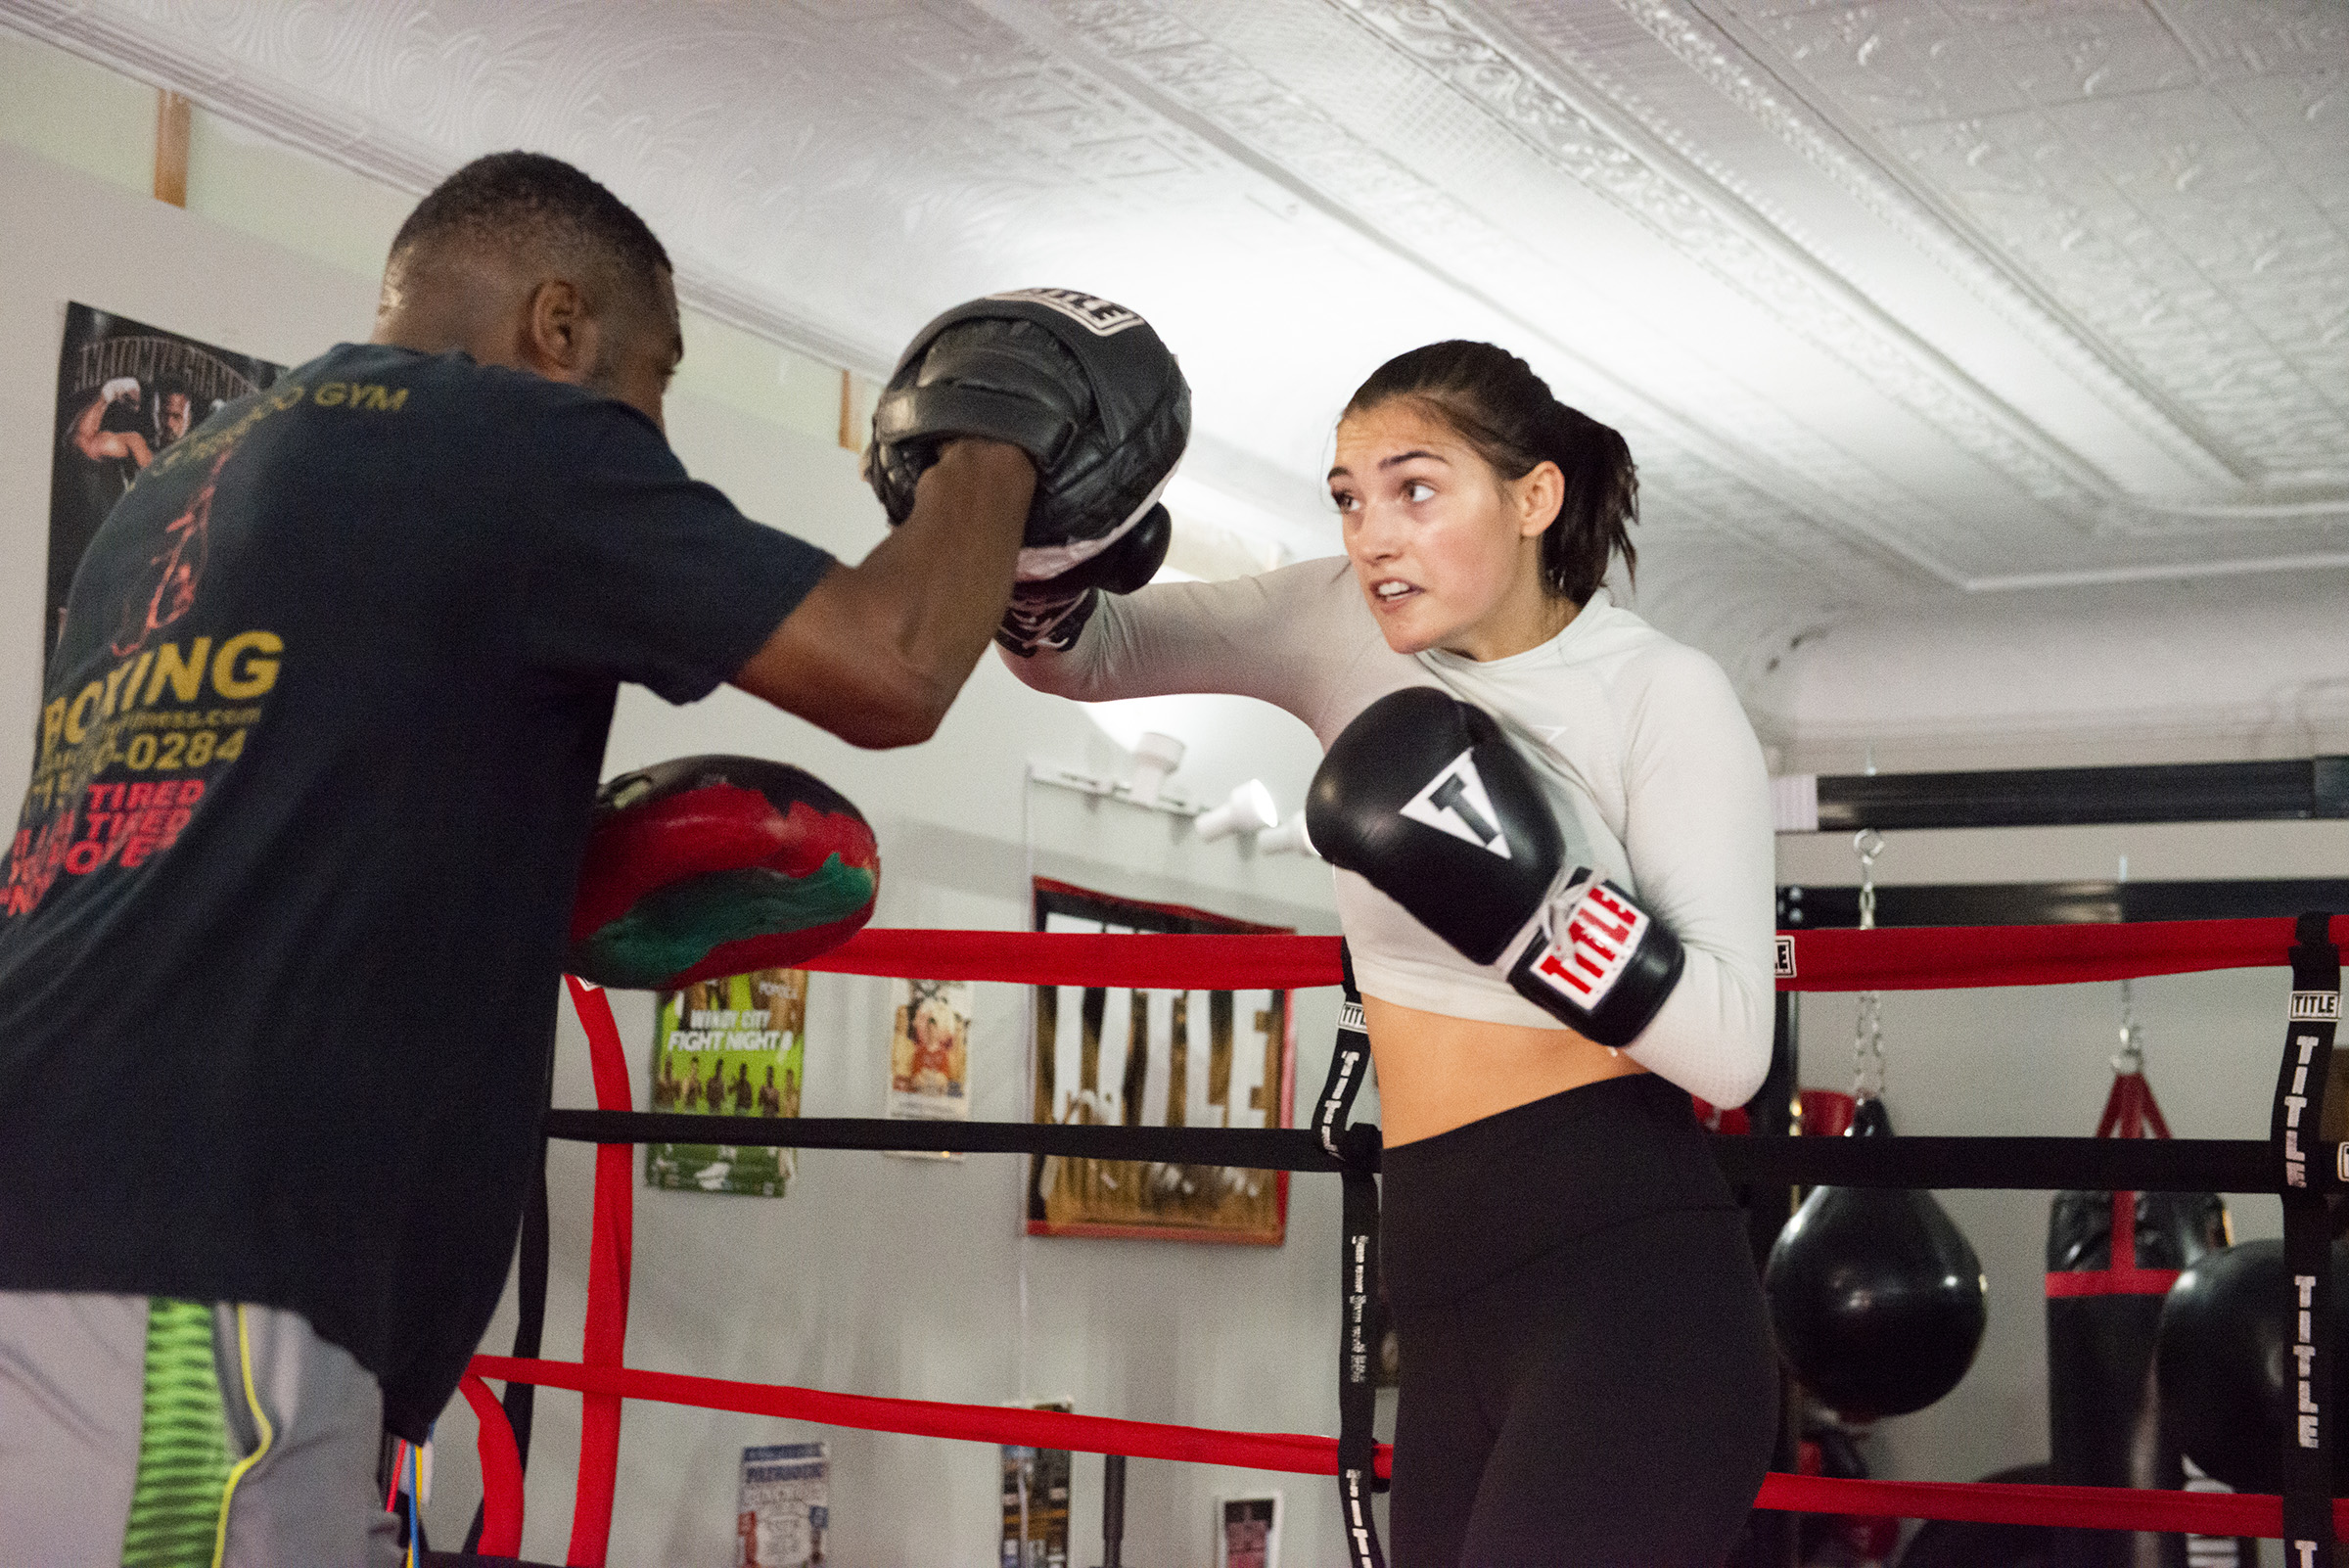 Training at Peek-a-Boo Boxing Gym